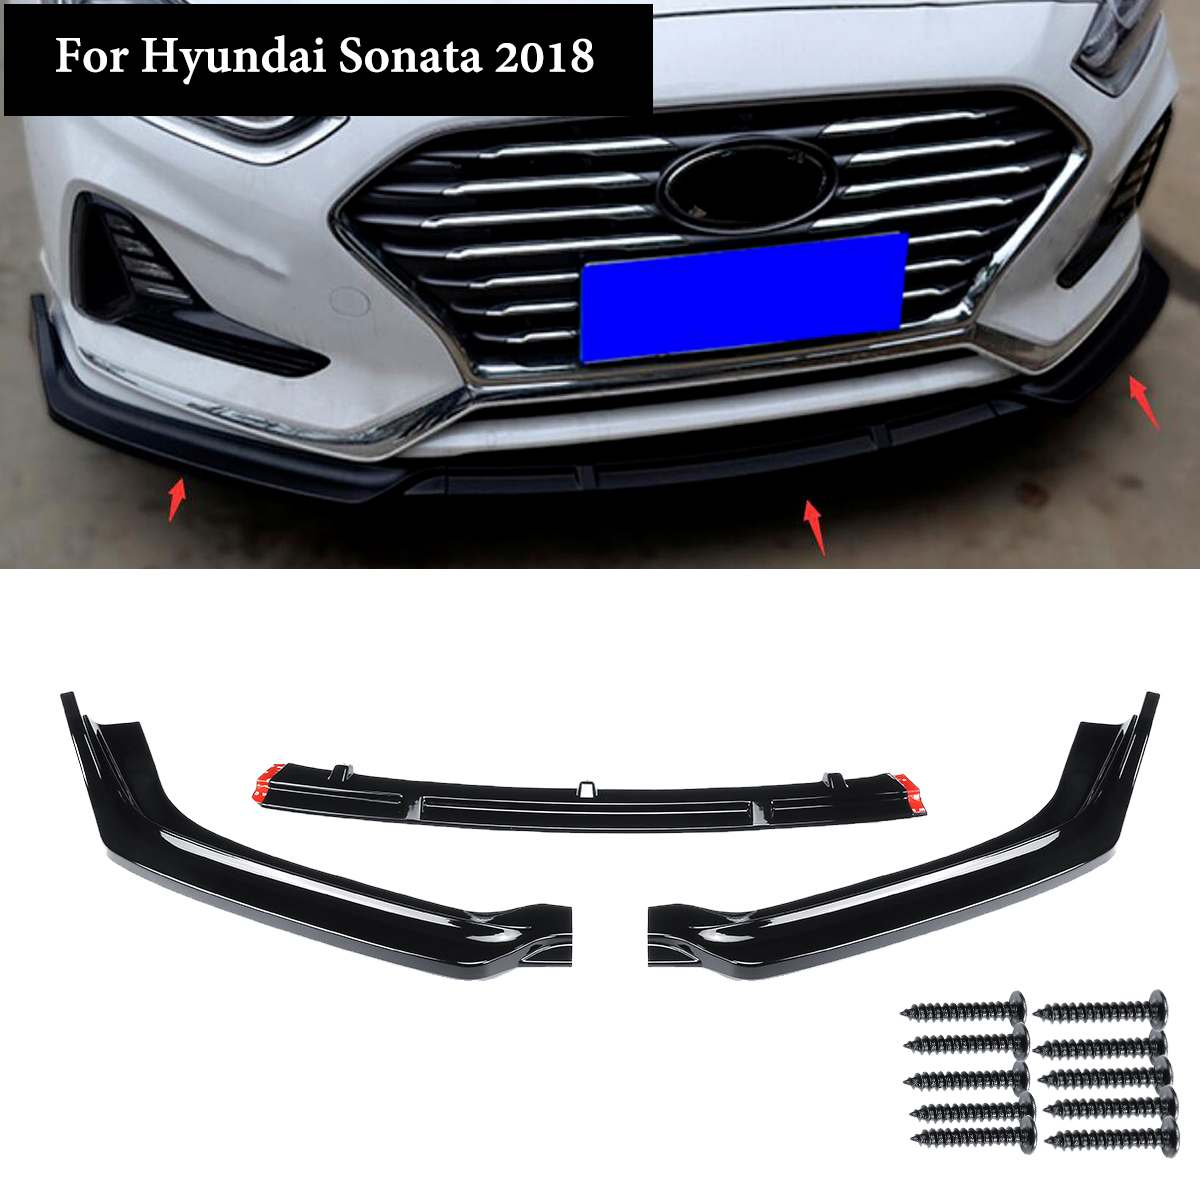 3pcs/ Set Car Front Bumper Lip Cover Trim for Hyundai Sonata Hybrid 2018 Exterior Parts Auto Gloss Black ABS Front Bumper